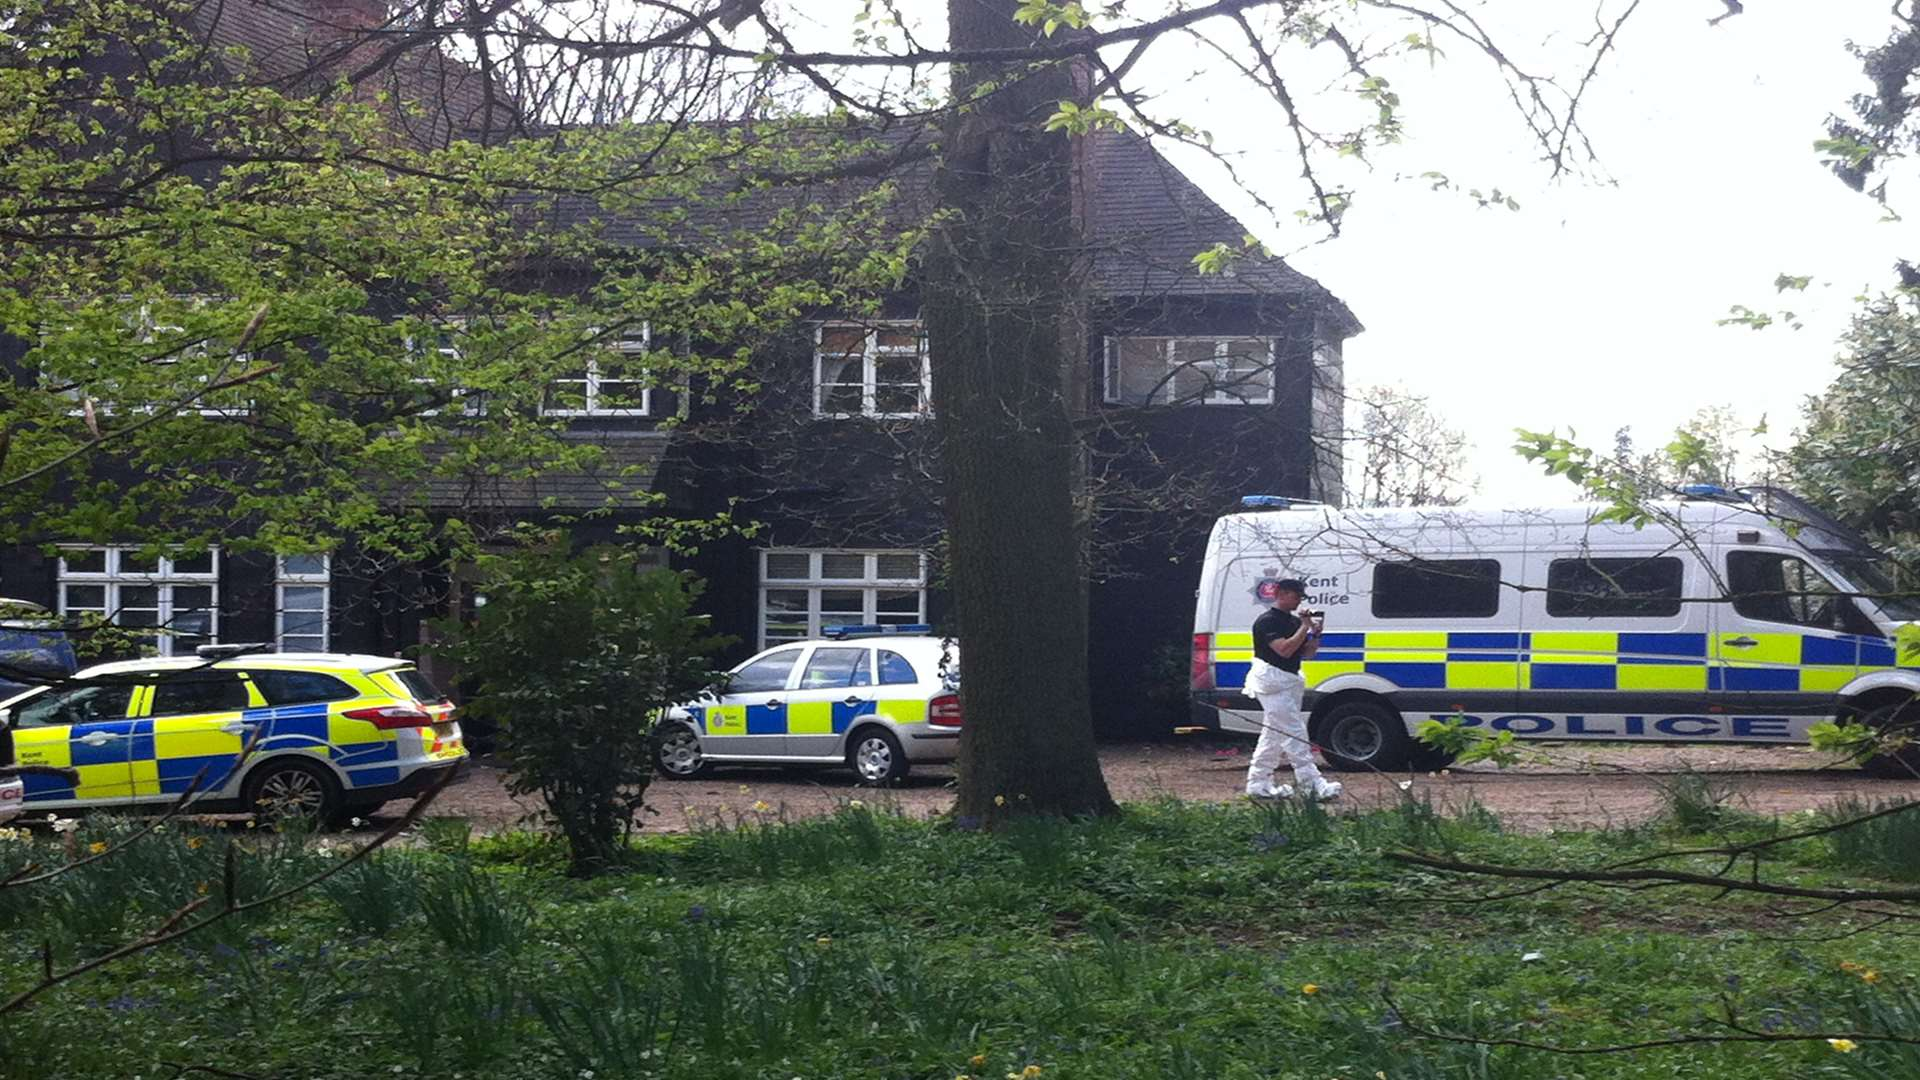 Police take pictures in the grounds of Peaches Geldof's home. Picture: Kiran Kaur